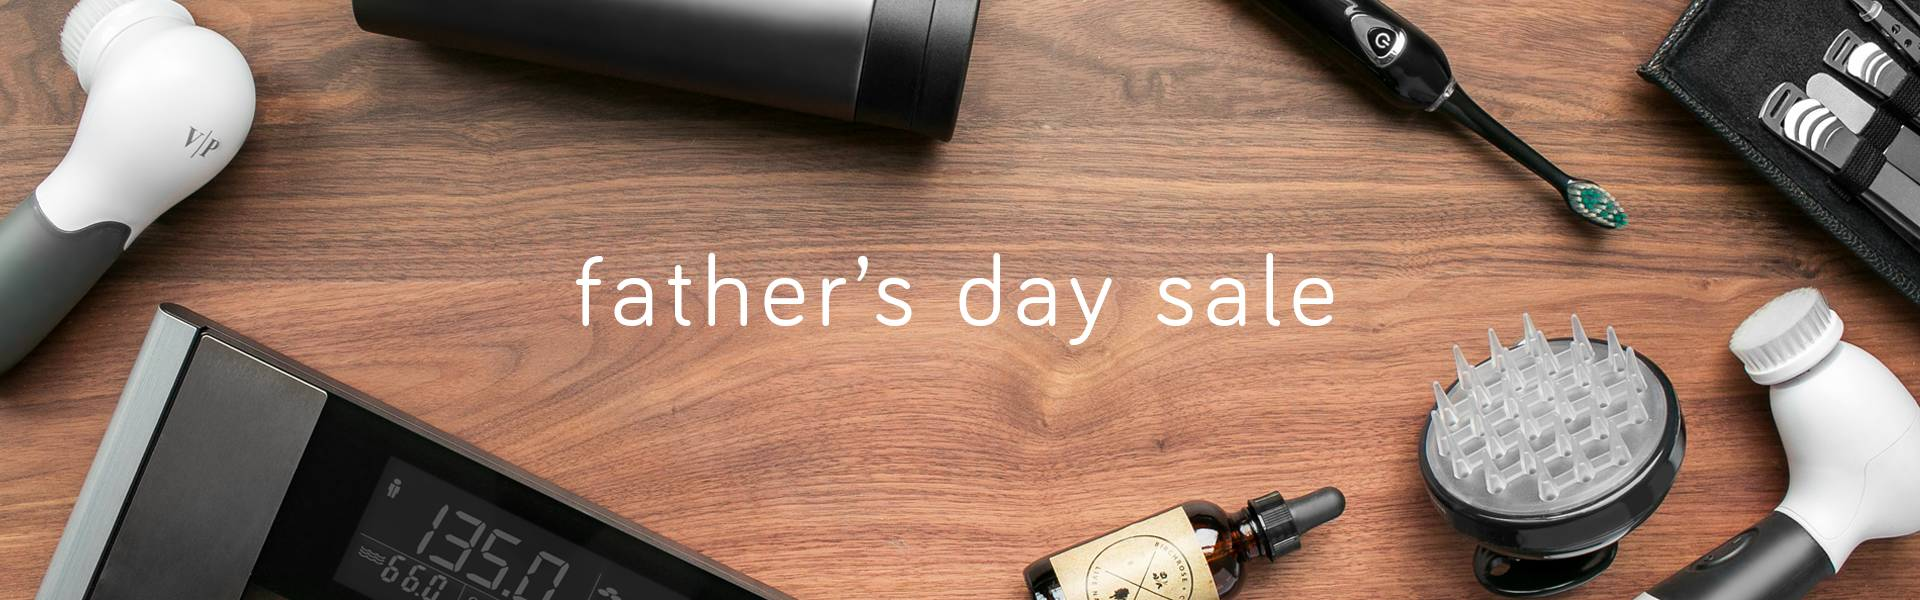 VP Father's Day Sale